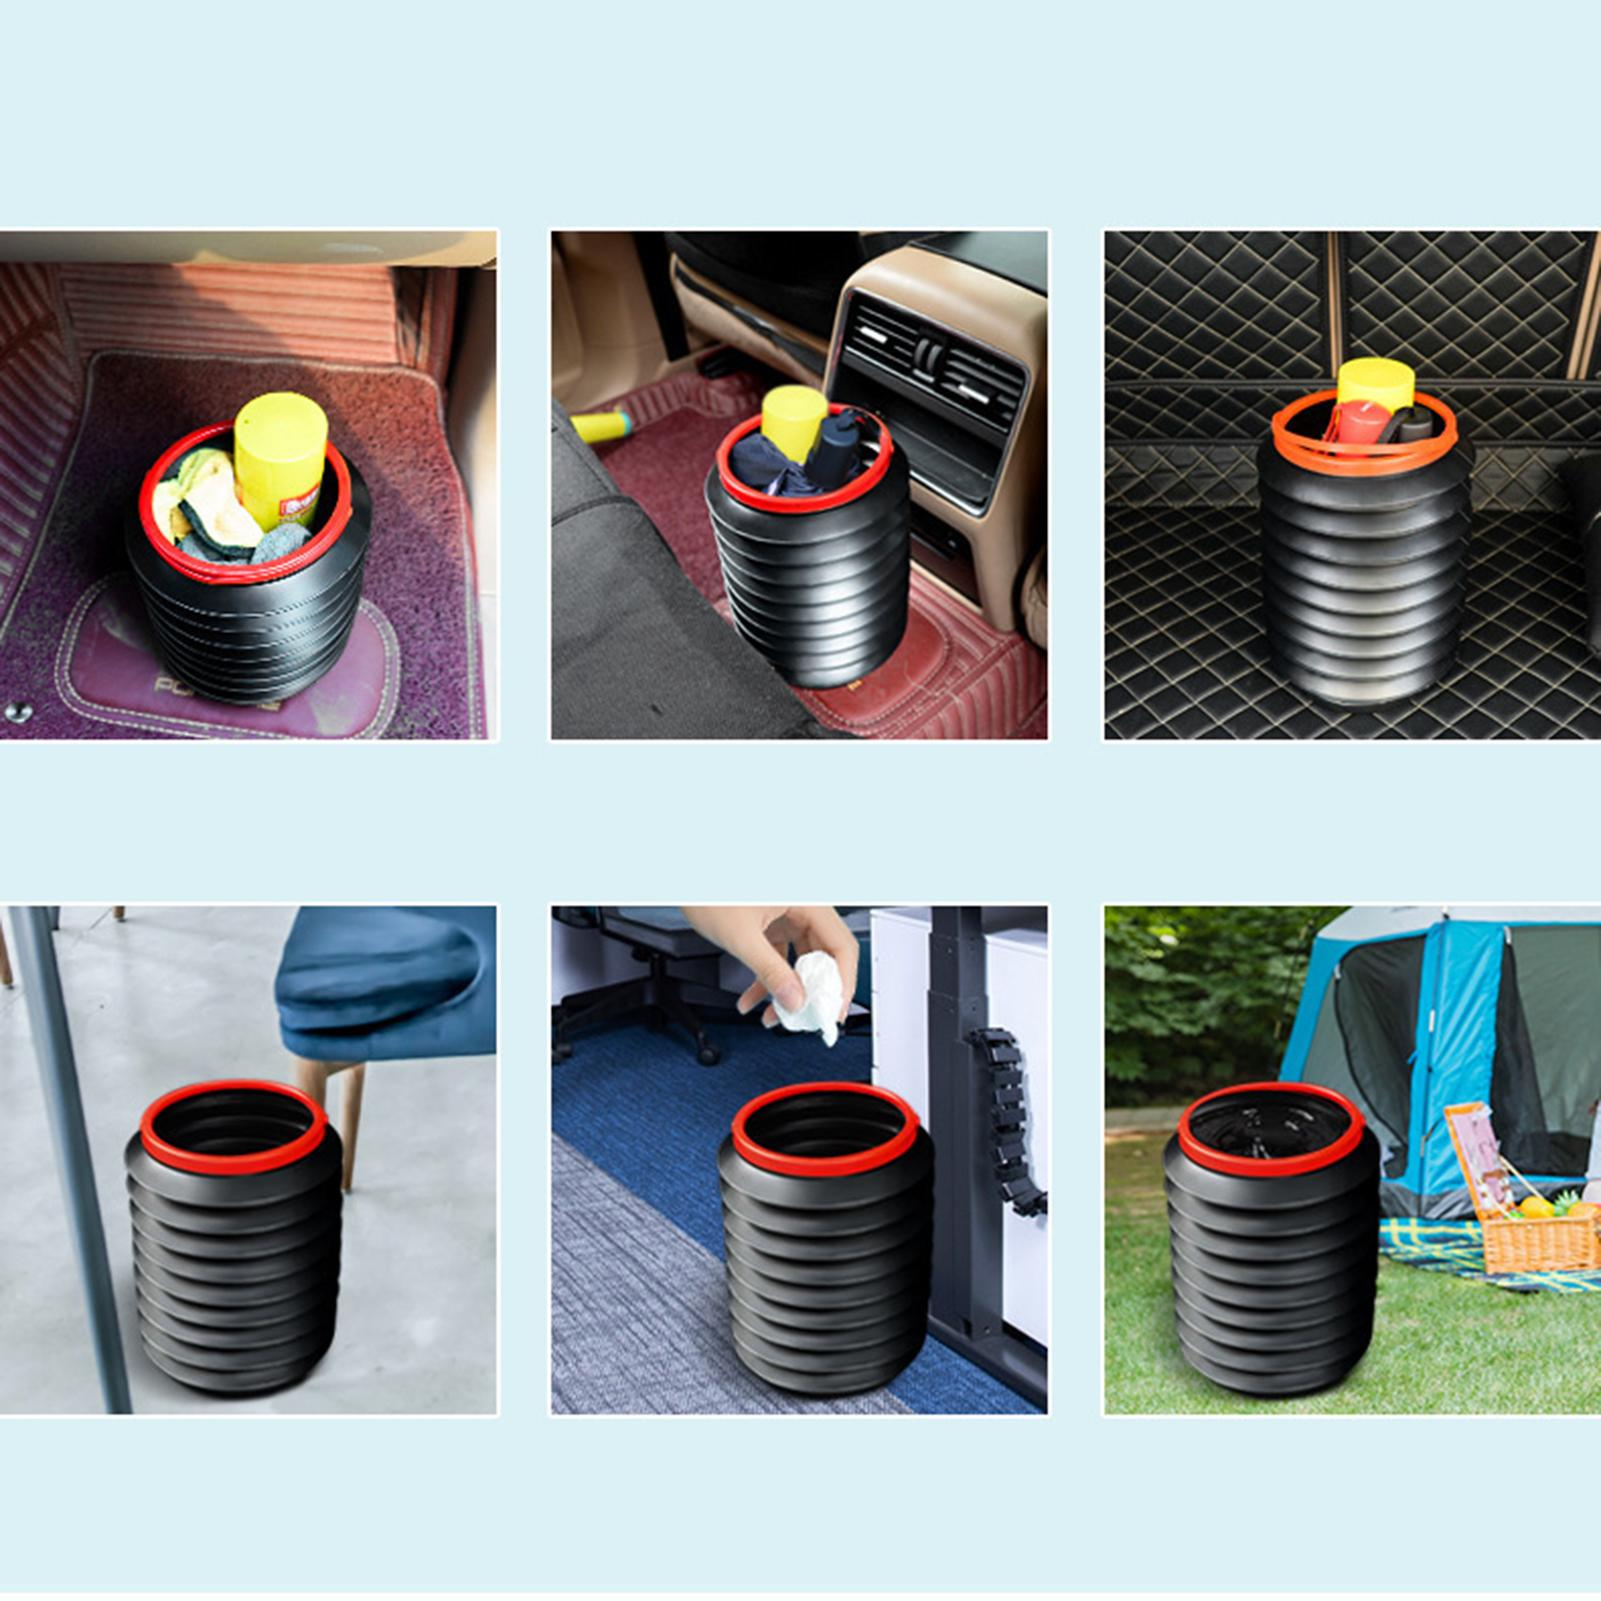 Multifunctional Telescopic For Car Dustbin Waste Black Rubbish Basket Bin Organizer Storage Holder B